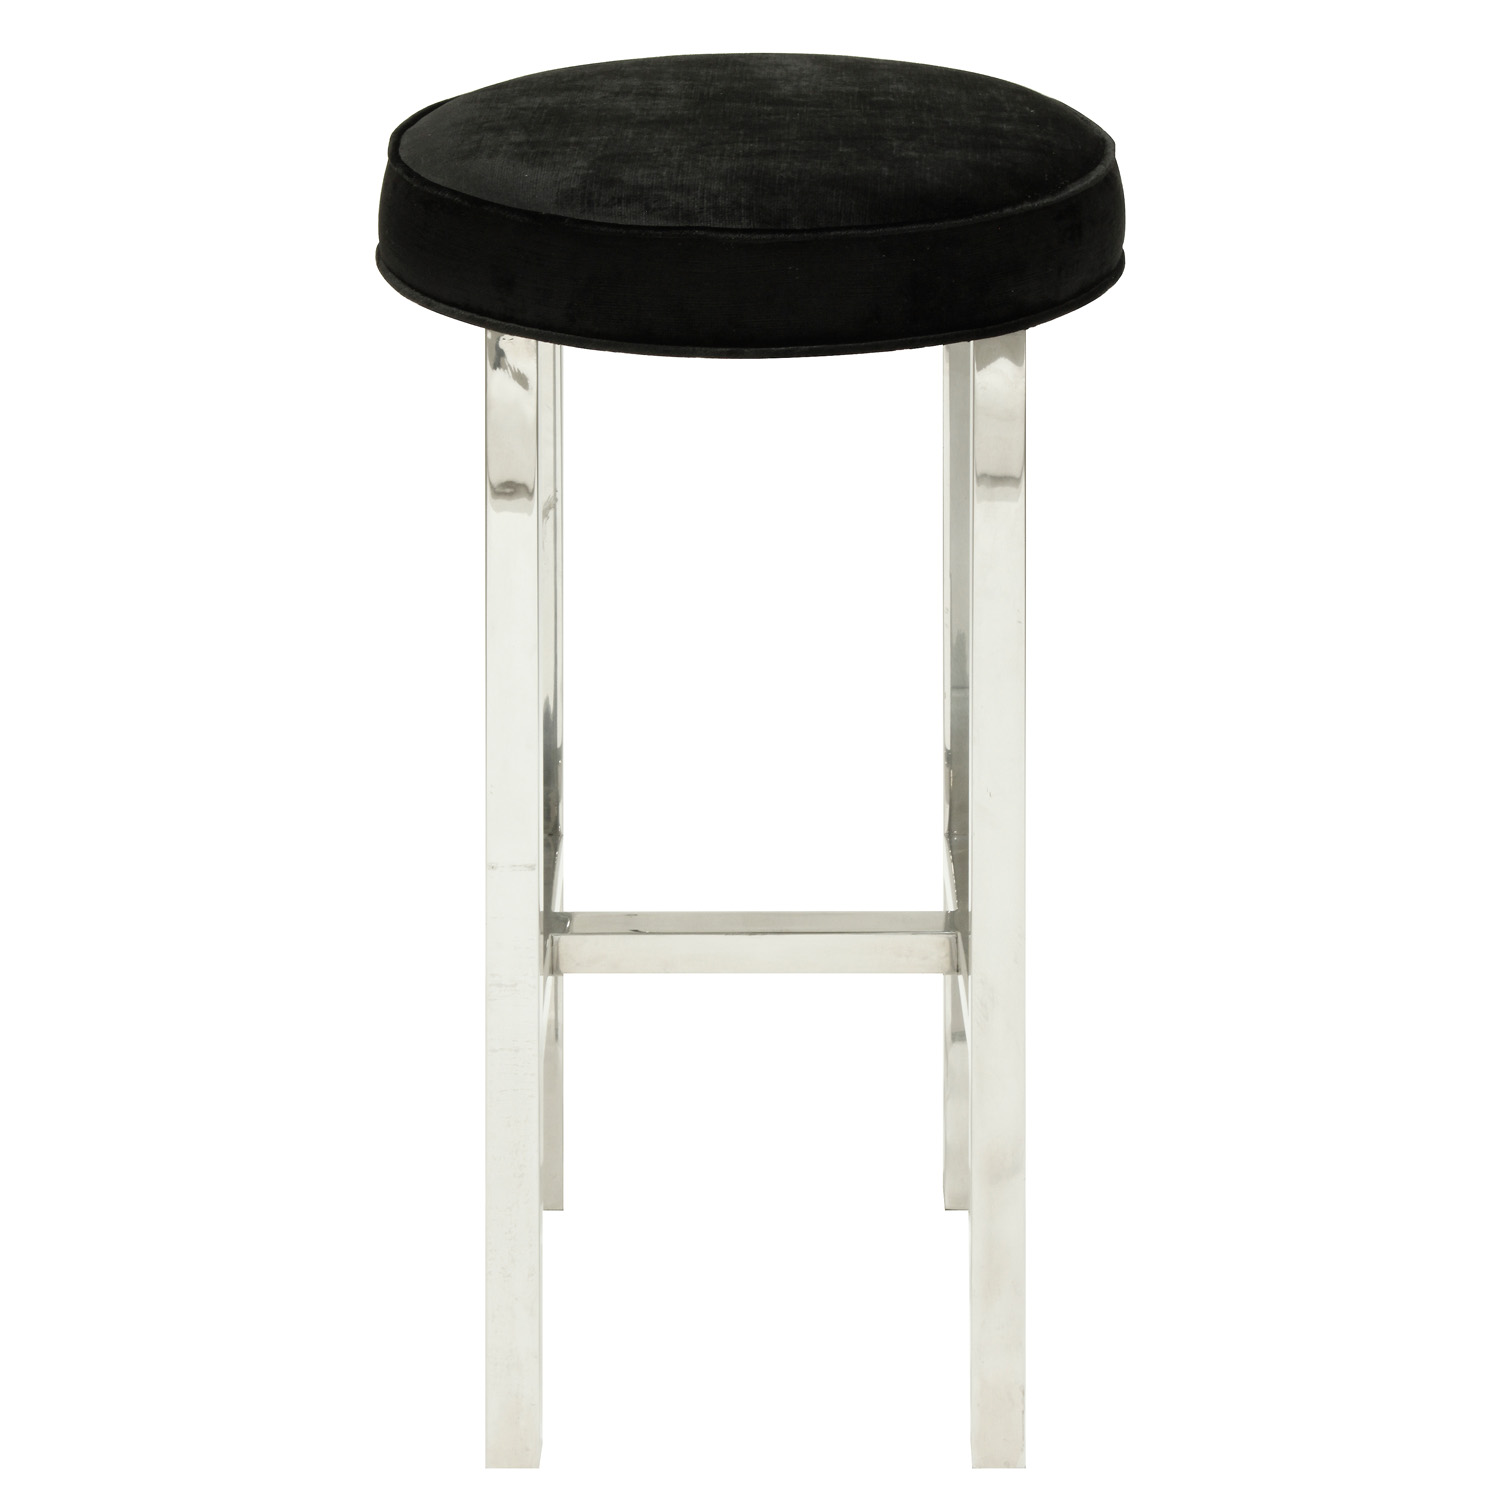 Pace 45 pr stainless pony seats barstools31 sde.jpg